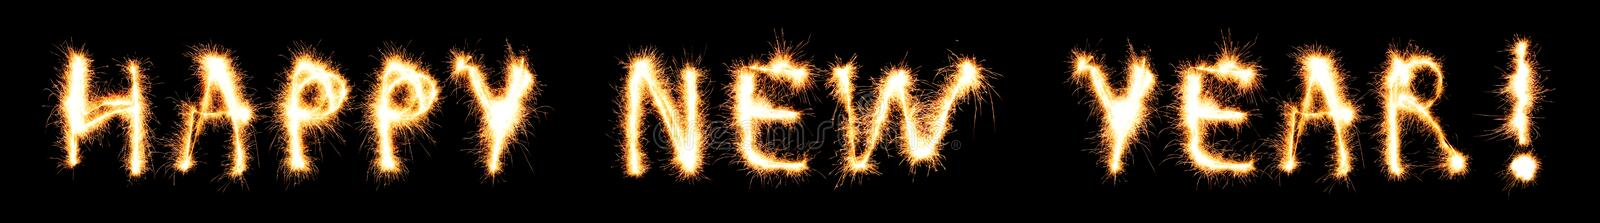 Download Happy new year text stock image. Image of word, text, holiday - 7198077